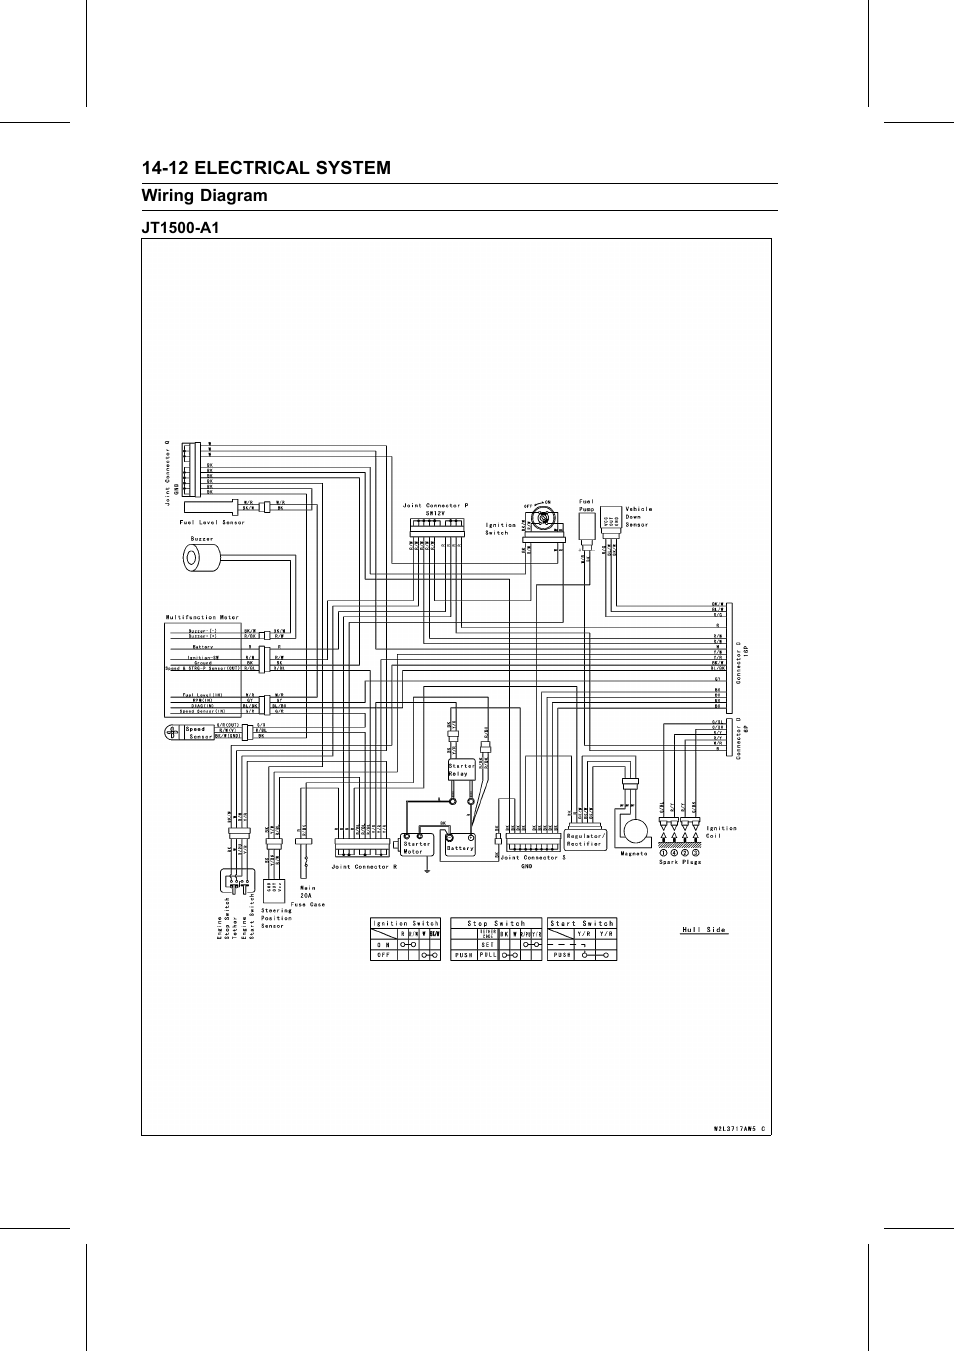 Kawasaki Stx 15f Wiring Diagram List Of Schematic Circuit Fiat Ulysse Diagrams Jt1500 A1 User Manual Page 338 Rh Manualsdir Com